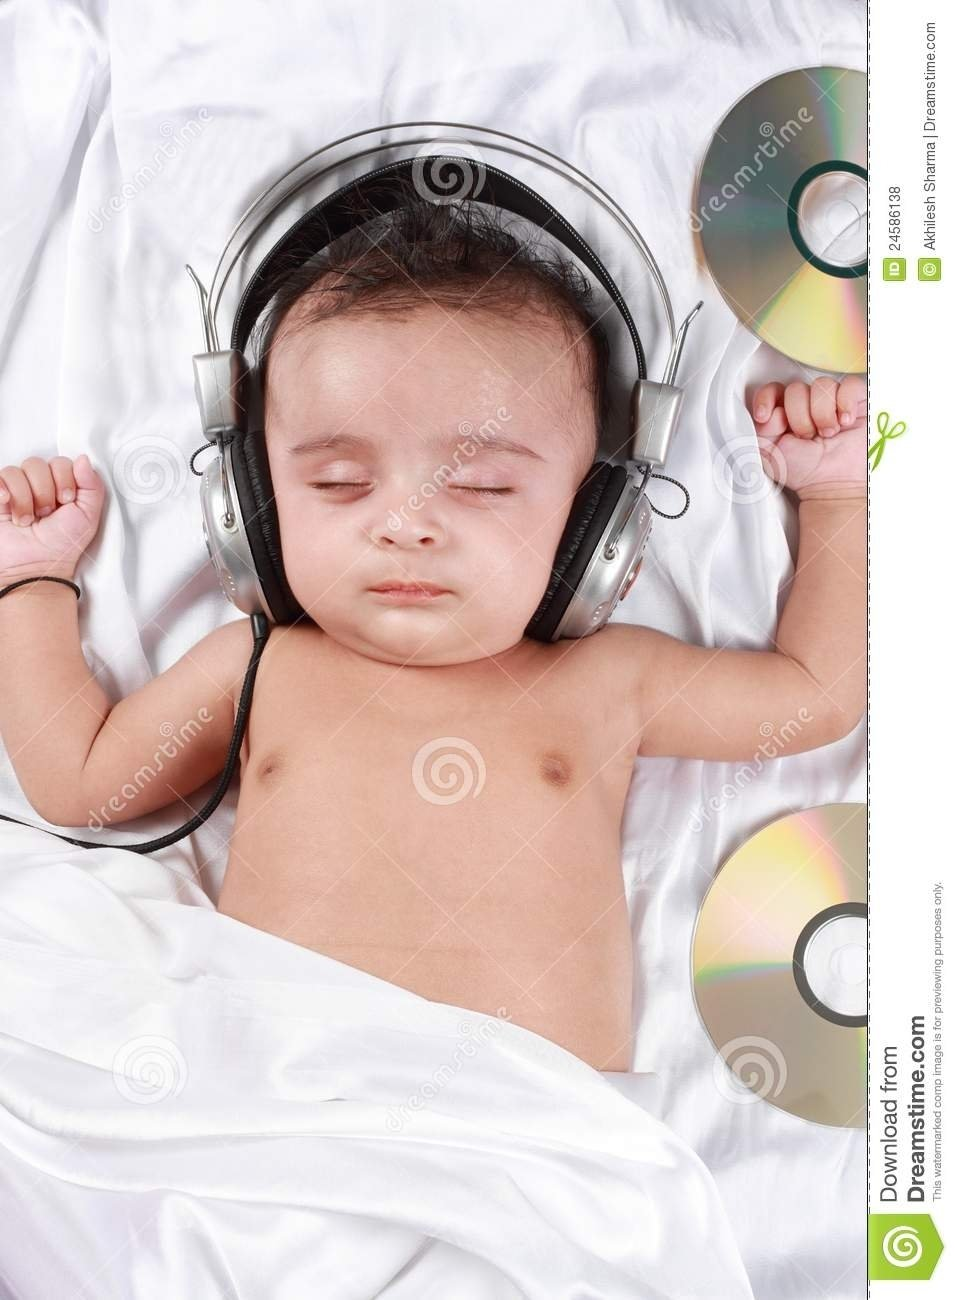 10 Unique 2 Month Old Baby Photography Ideas 2 month old baby listening to music stock photo image of indian 2020